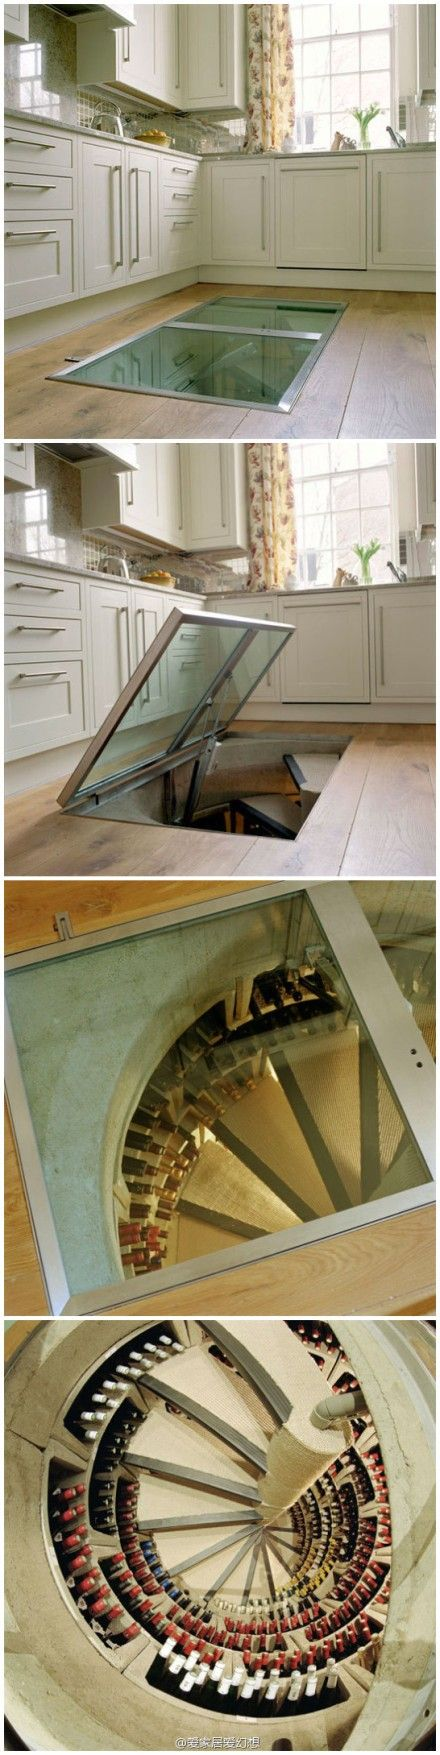 An alcoholic beverage made from grapes = wine + A room located below floor level = cellar thus.. WINE CELLAR. ***** Now this really IS a wine cellar. :)